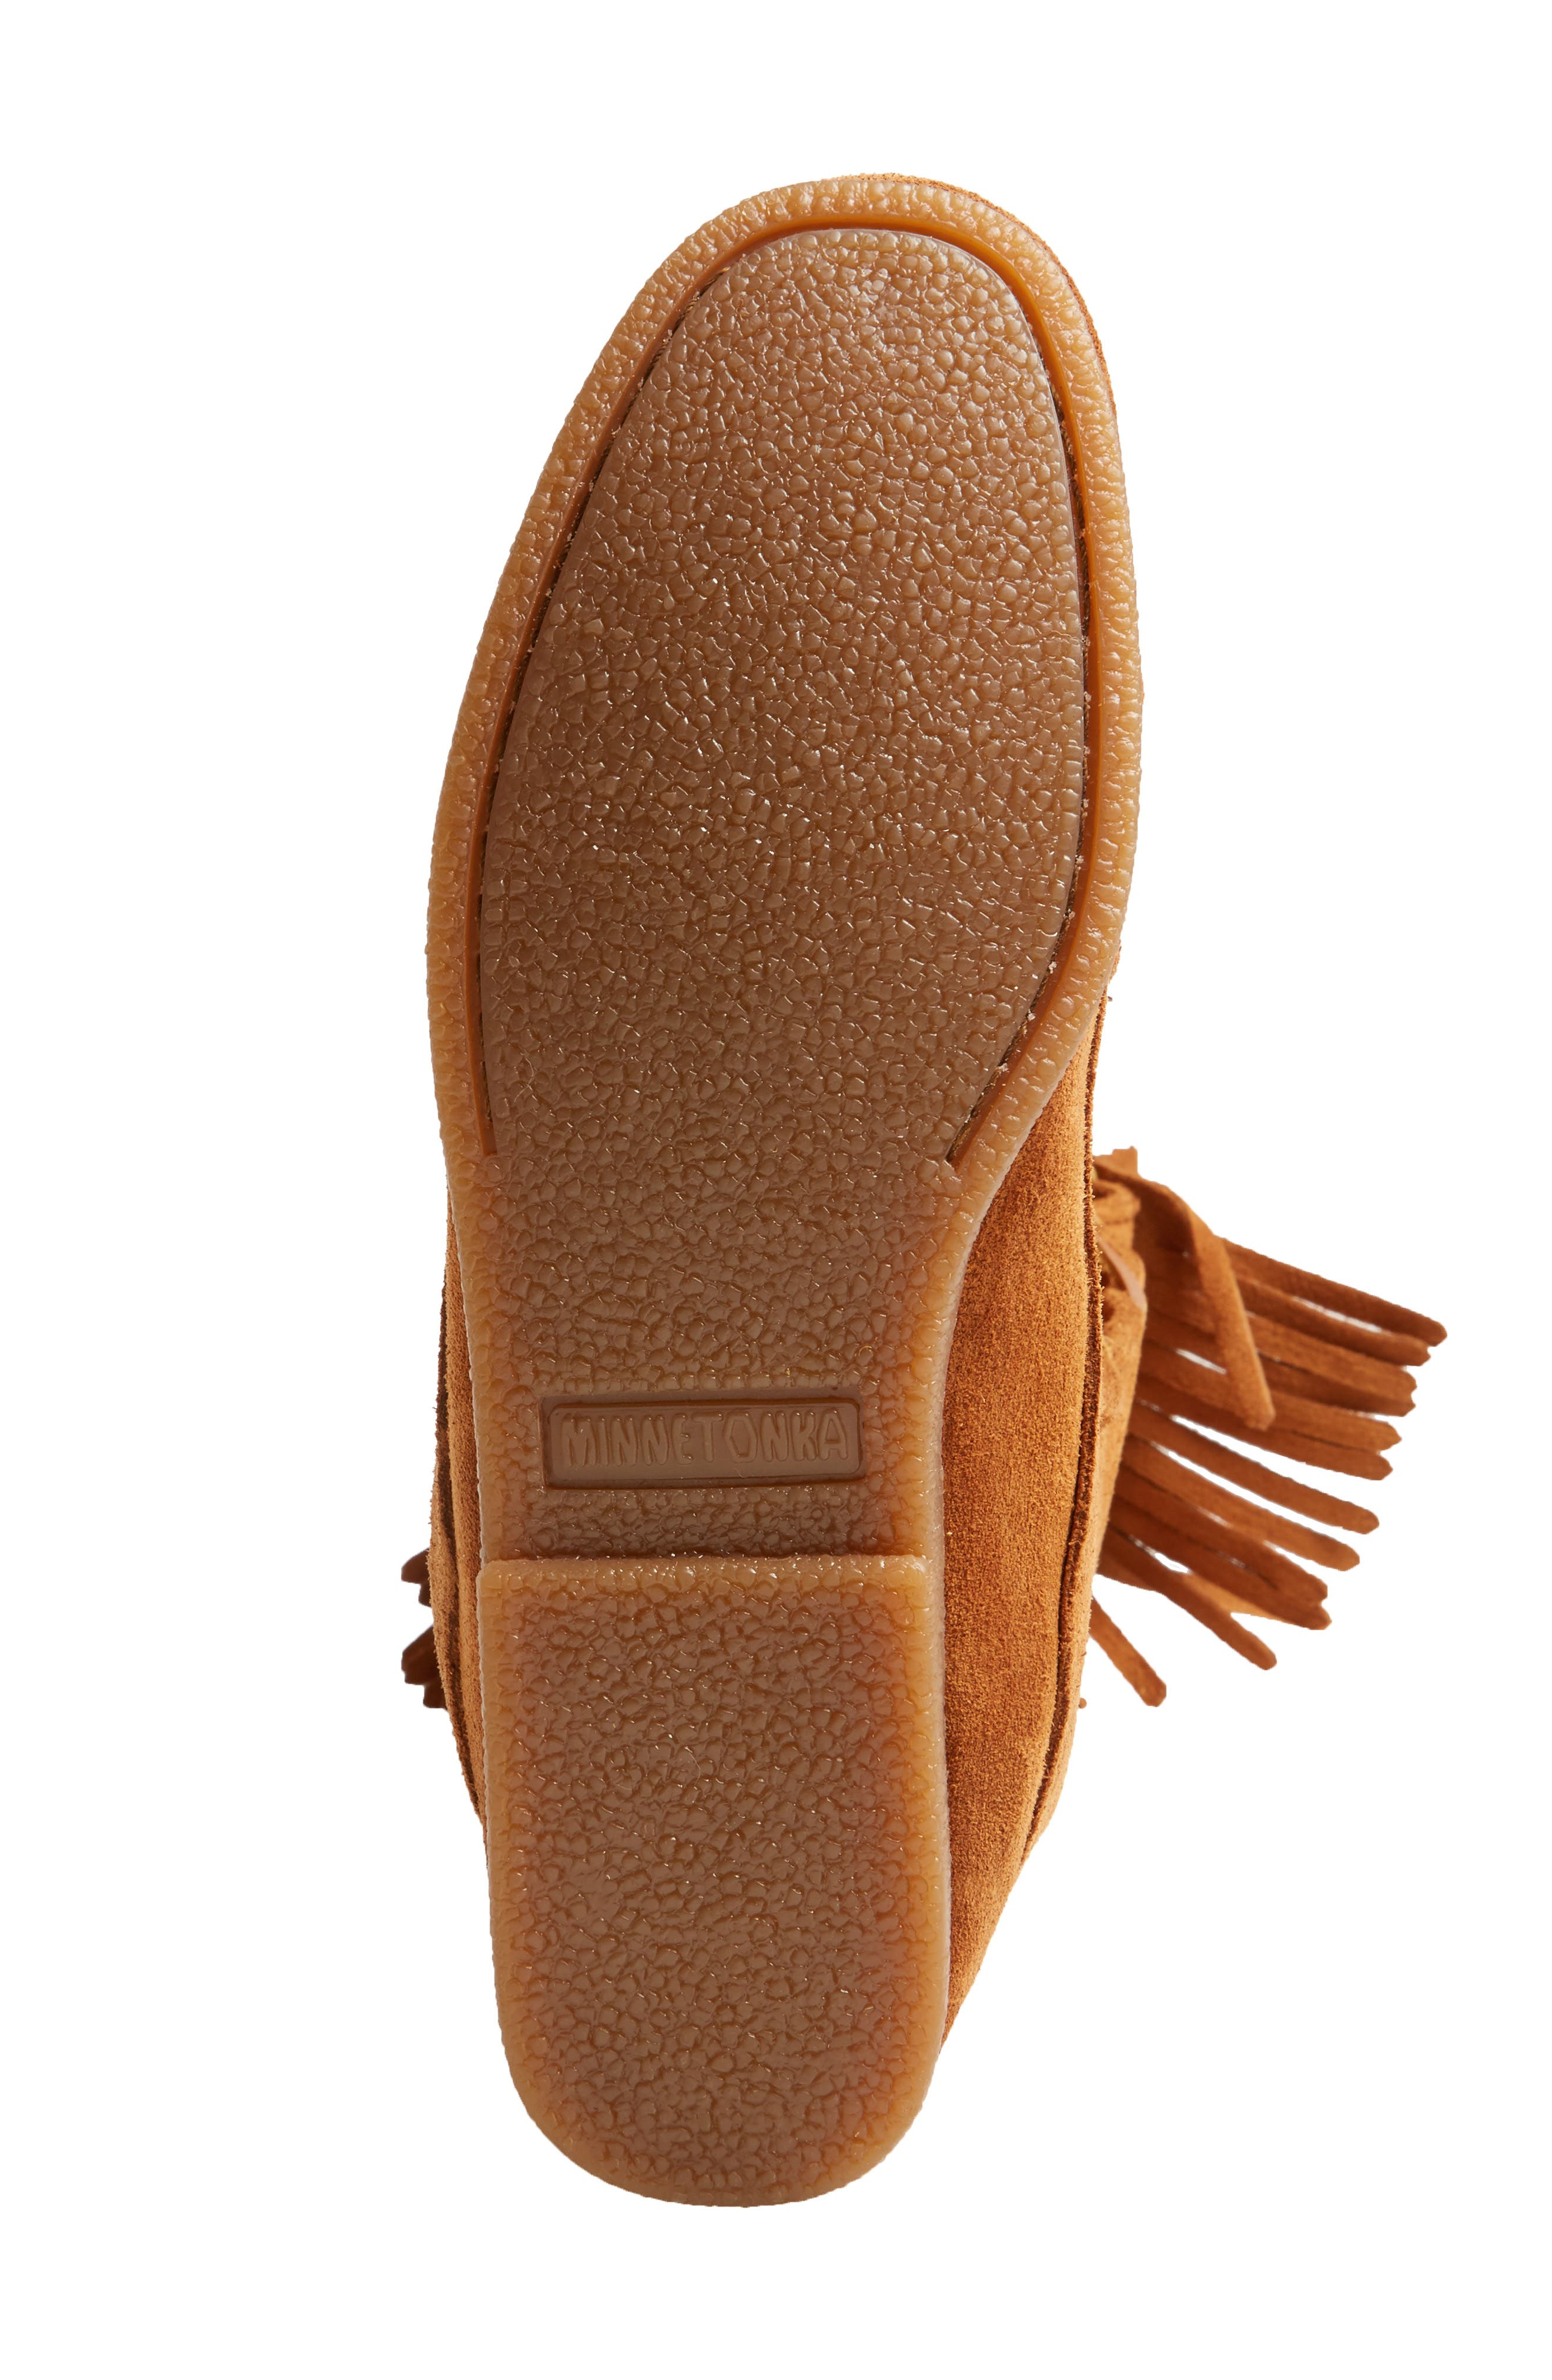 Knee High Moccasin Boot,                             Alternate thumbnail 6, color,                             Brown Suede